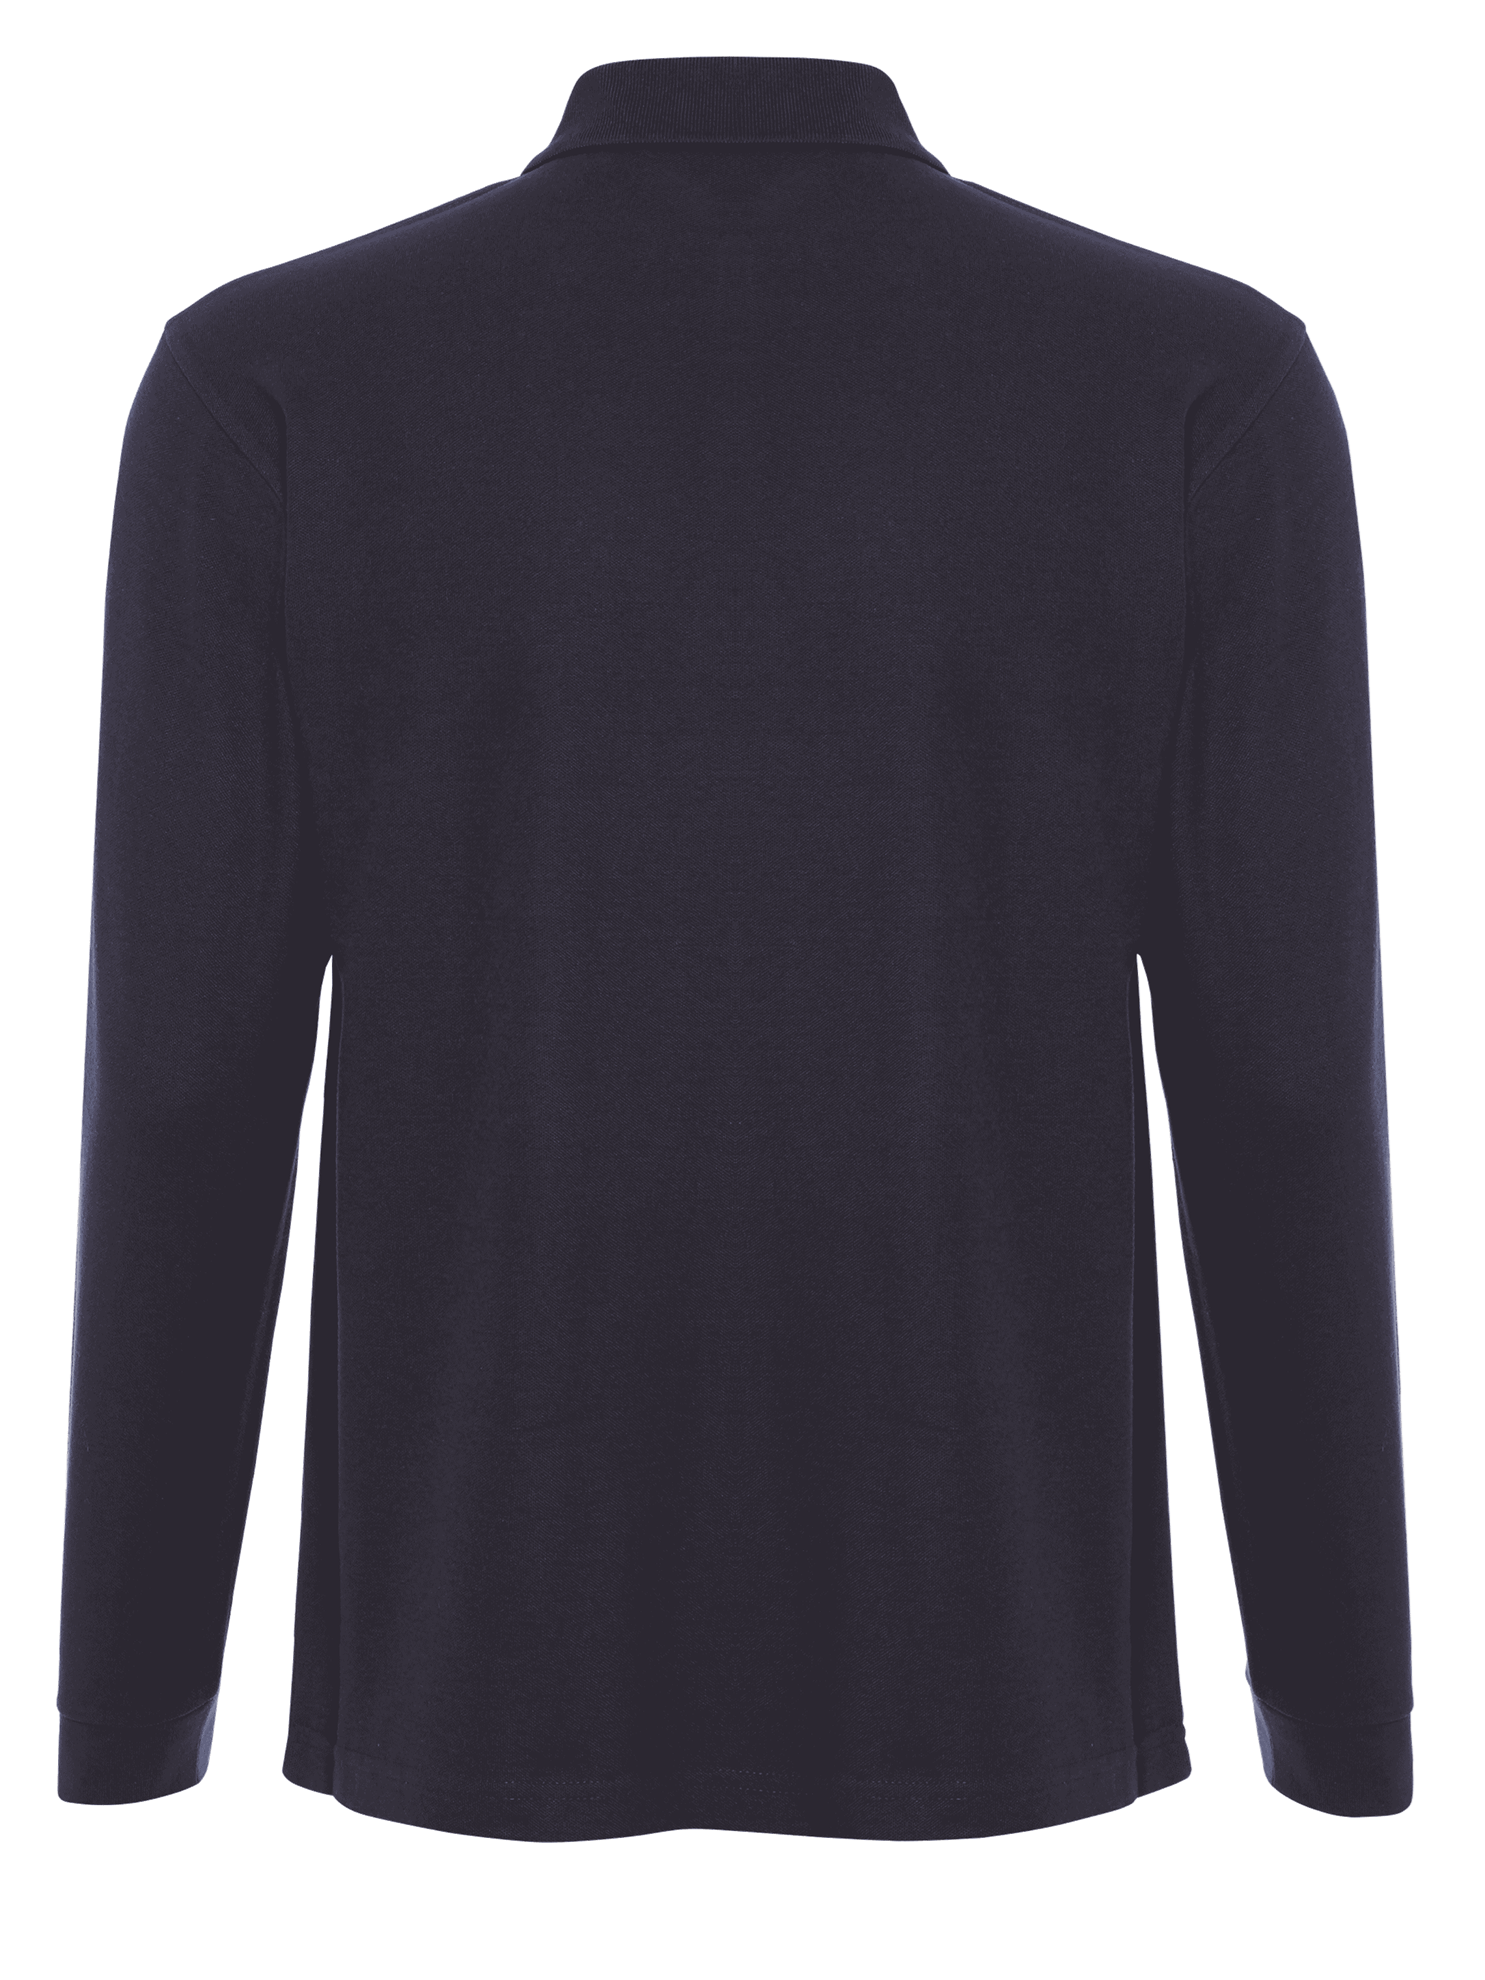 Picture of Long Sleeve Polo Shirt Navy